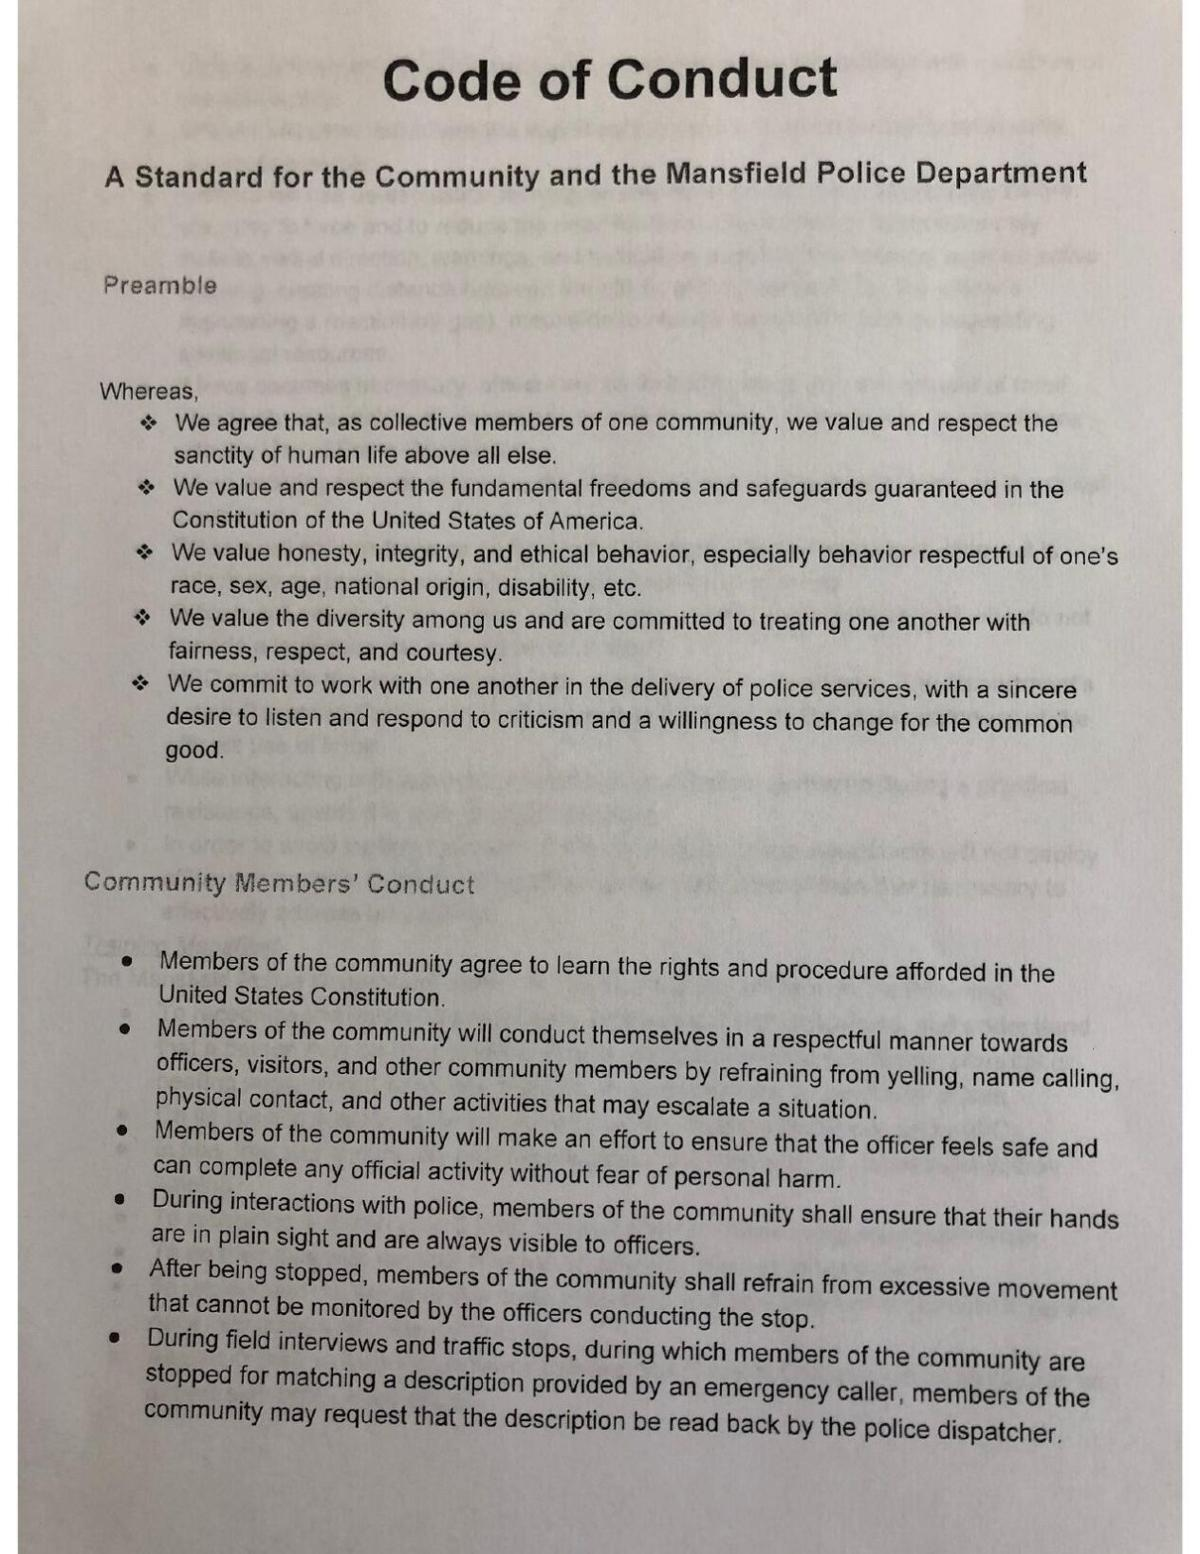 Code of Conduct Page 1